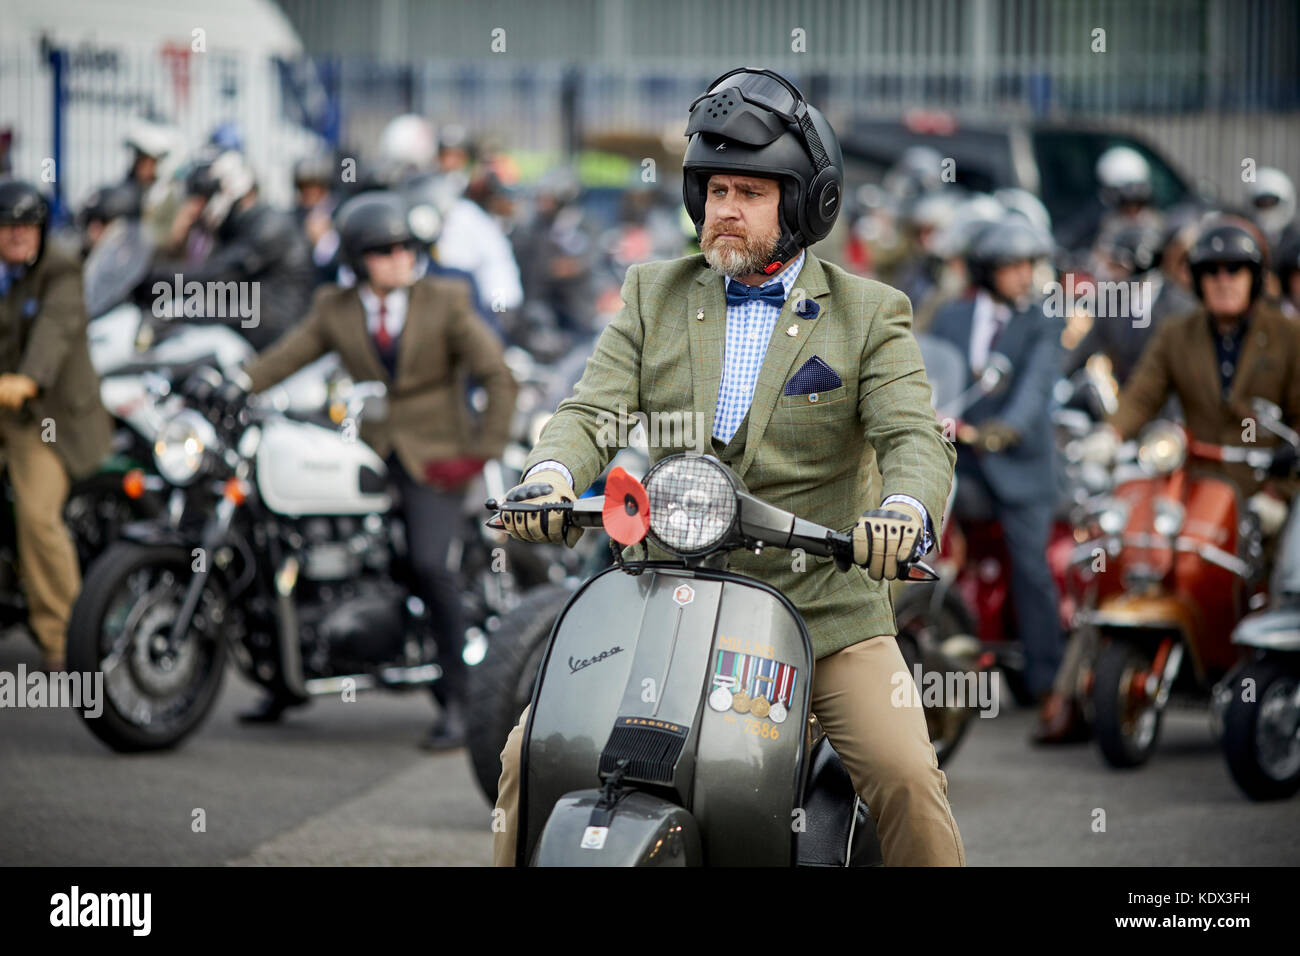 Manchester Distinguished Gentleman's Ride from Youles Motorcycles Bury Road Showroom to Castlefield - Stock Image